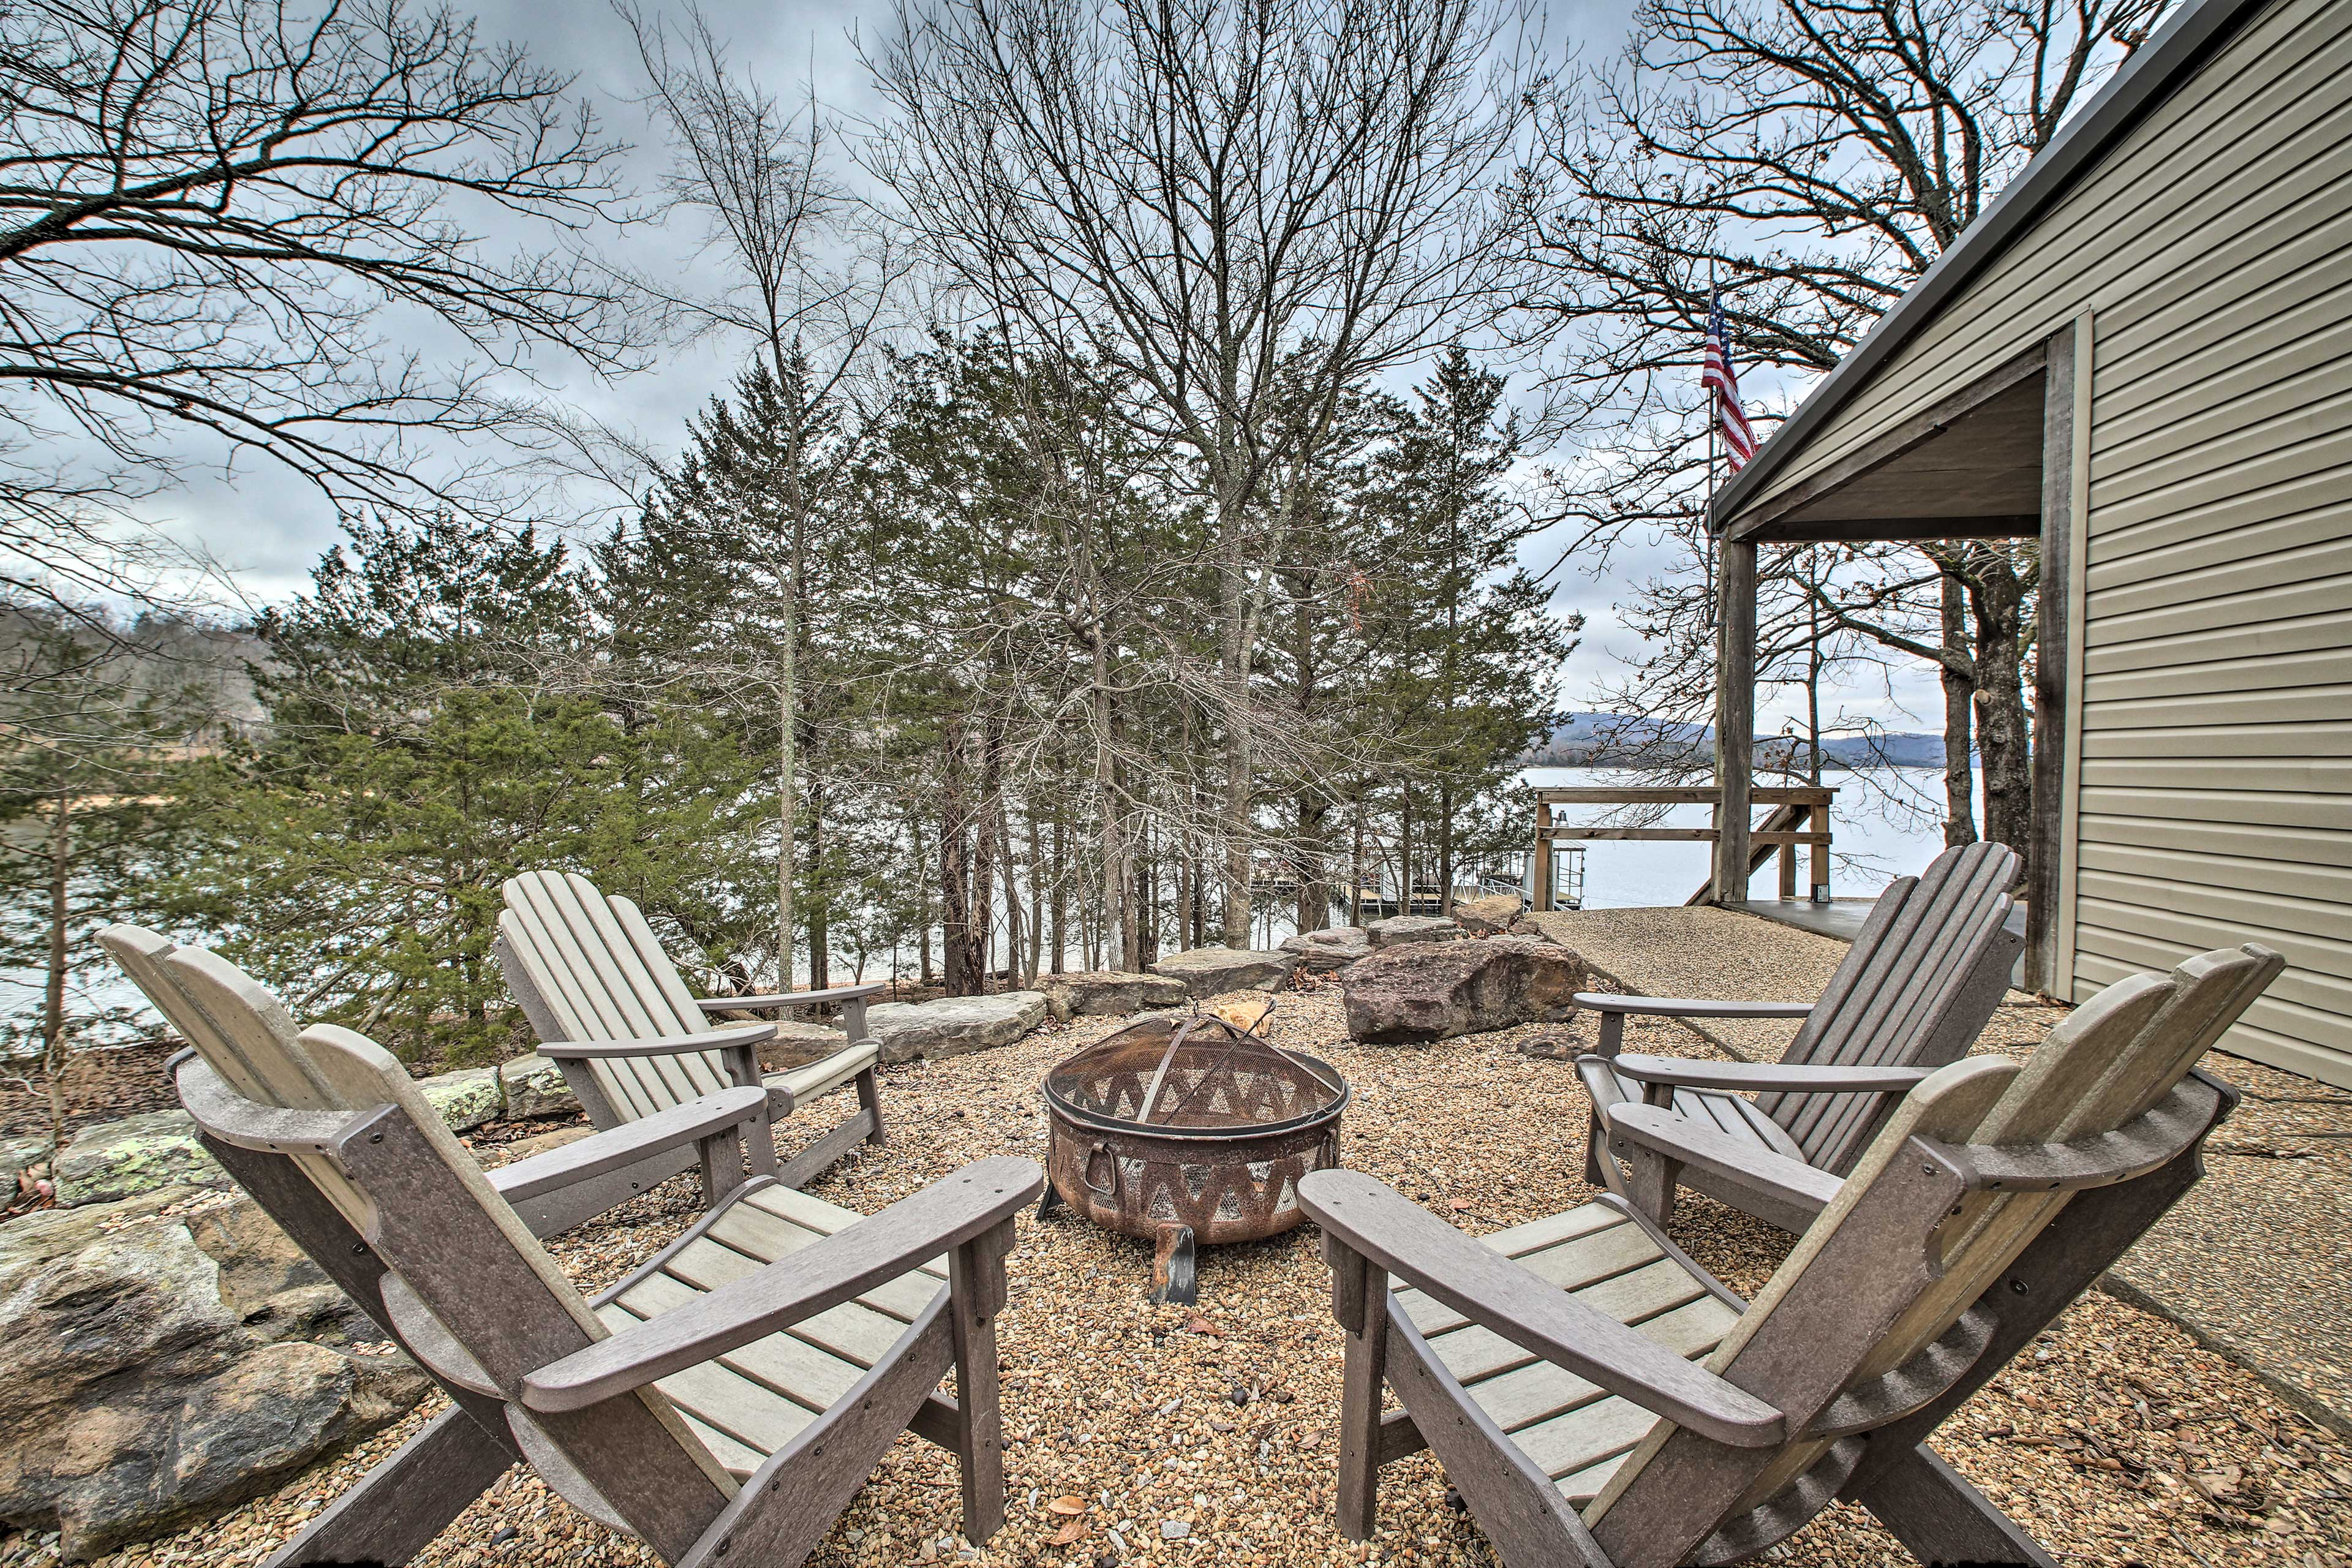 Gather round the fire in these comfortable Adirondack chairs.